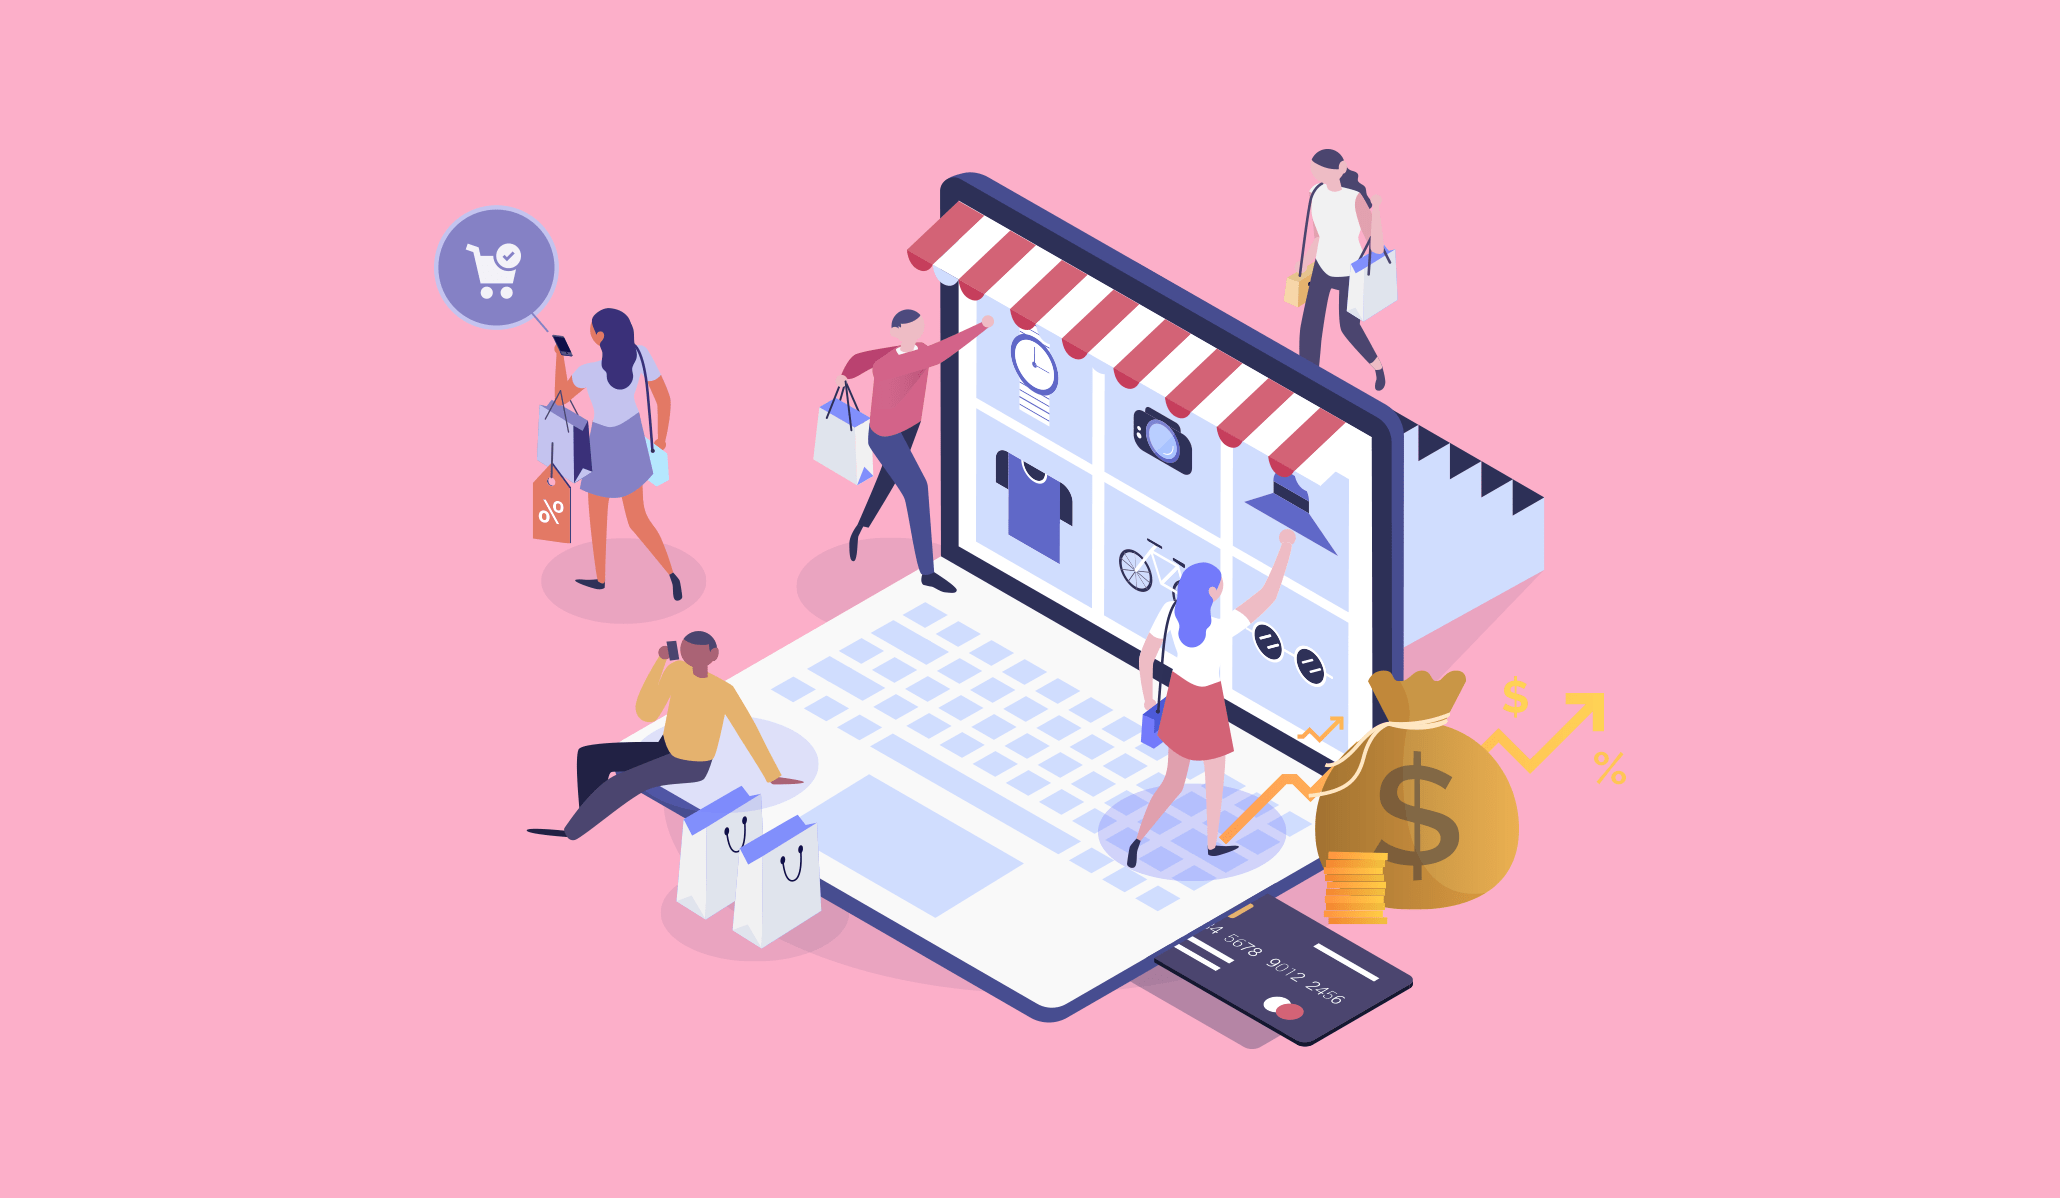 WooCommerce: A Quick Overview